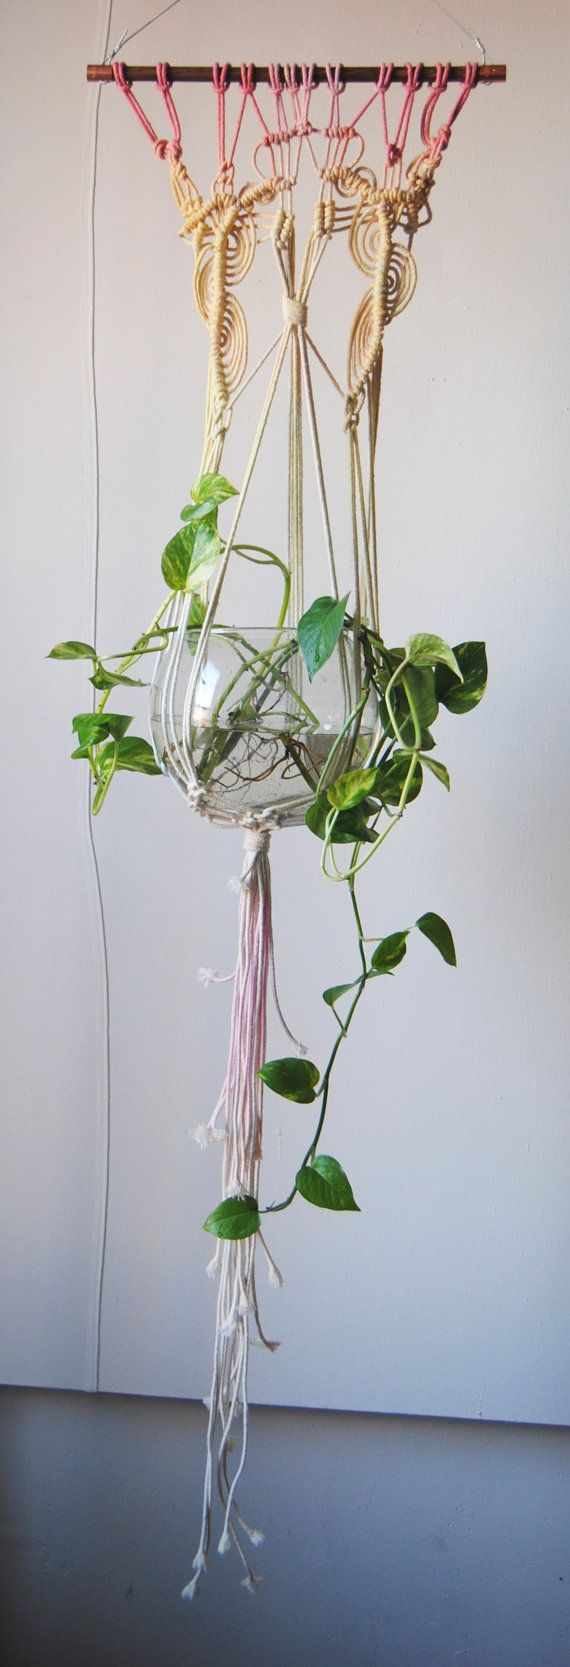 Macrame Plant Hanger: Slow Down Productions